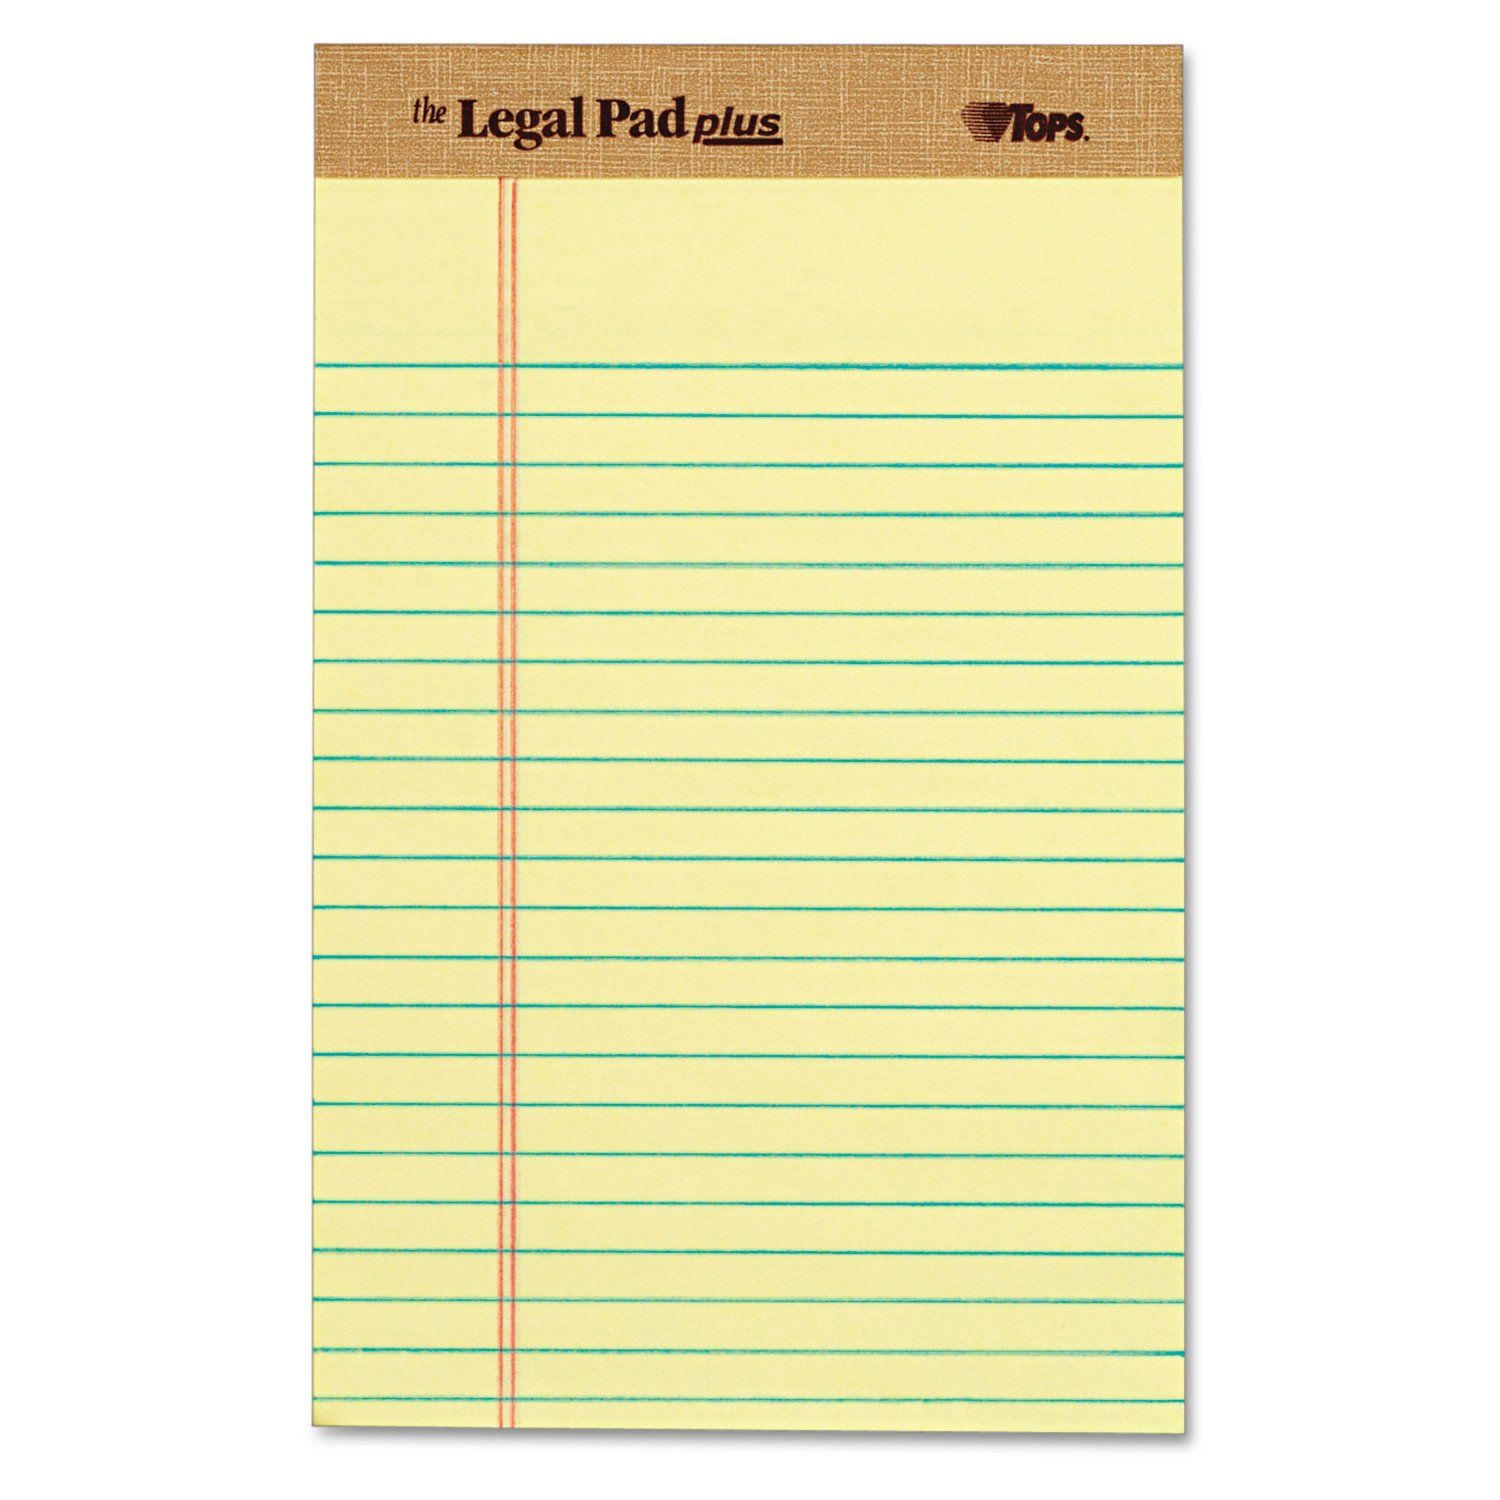 TOPS The Legal Pad Plus Writing Pads, 5'' x 8'', Jr. Legal Rule, Canary Paper, 50 Sheets, 12 Pack (71501)